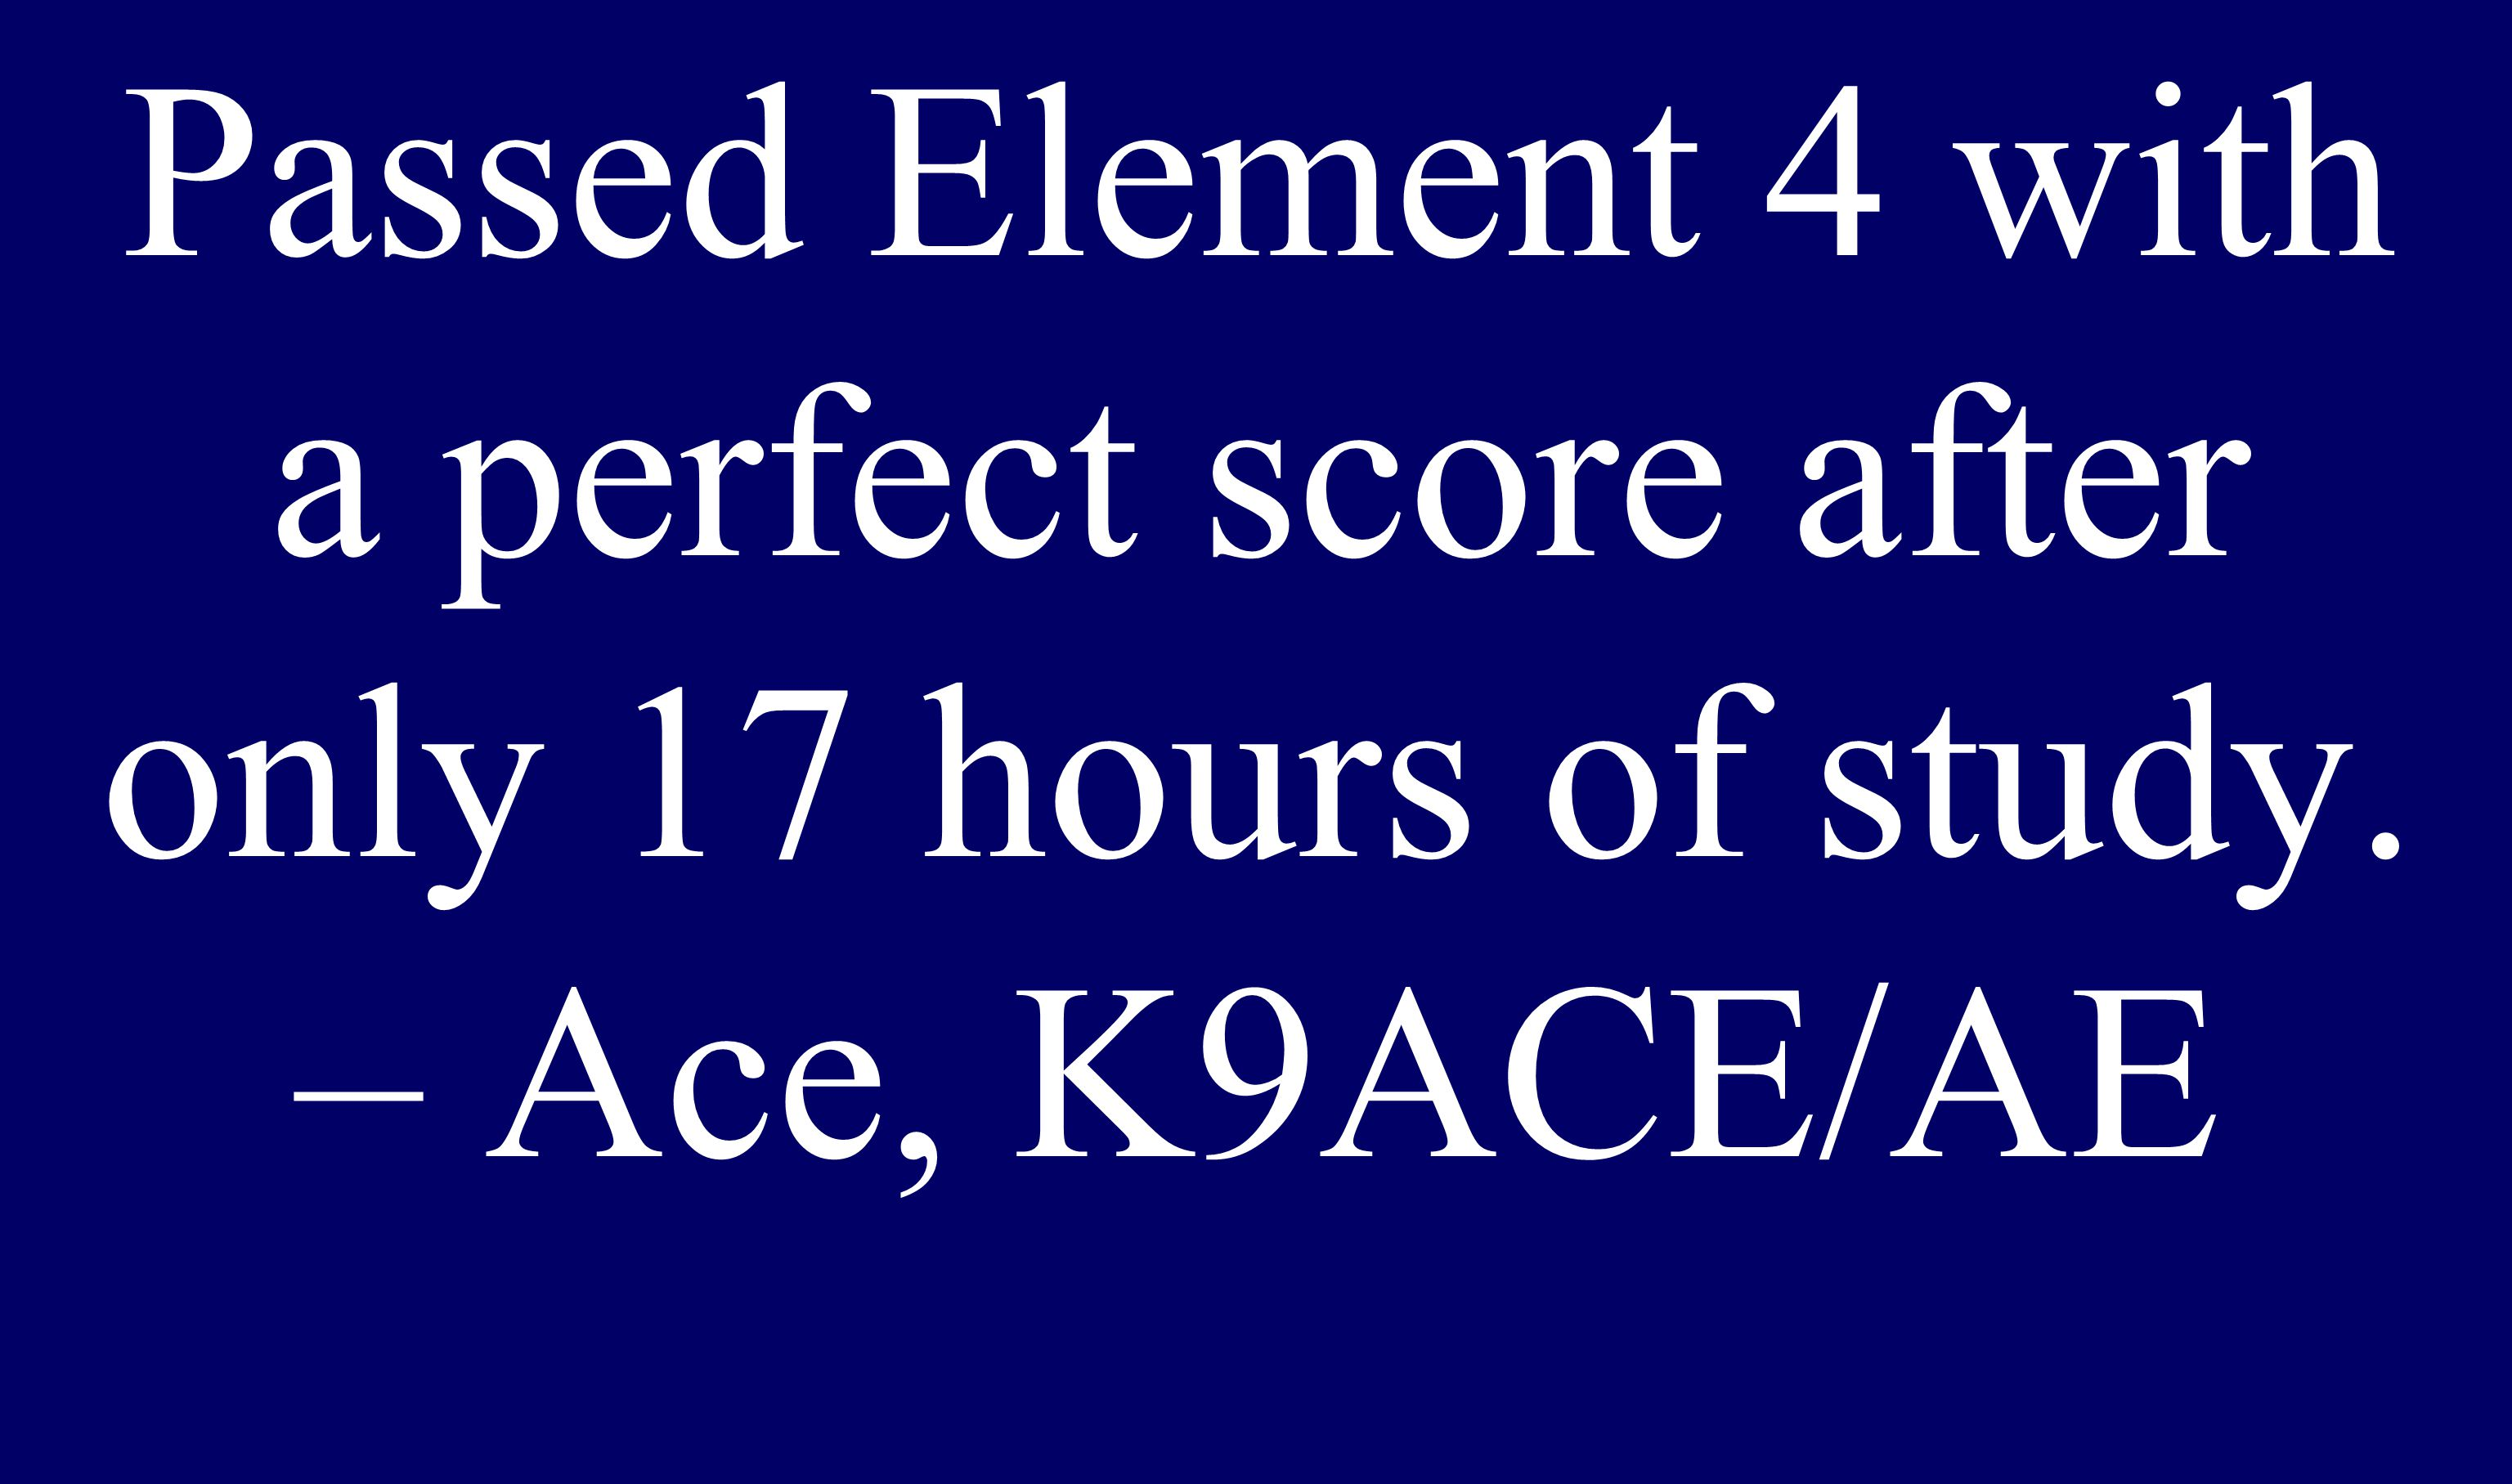 Passed Element 4 with a perfect score after only 17 hours of study. – Ace, K9ACE/AE